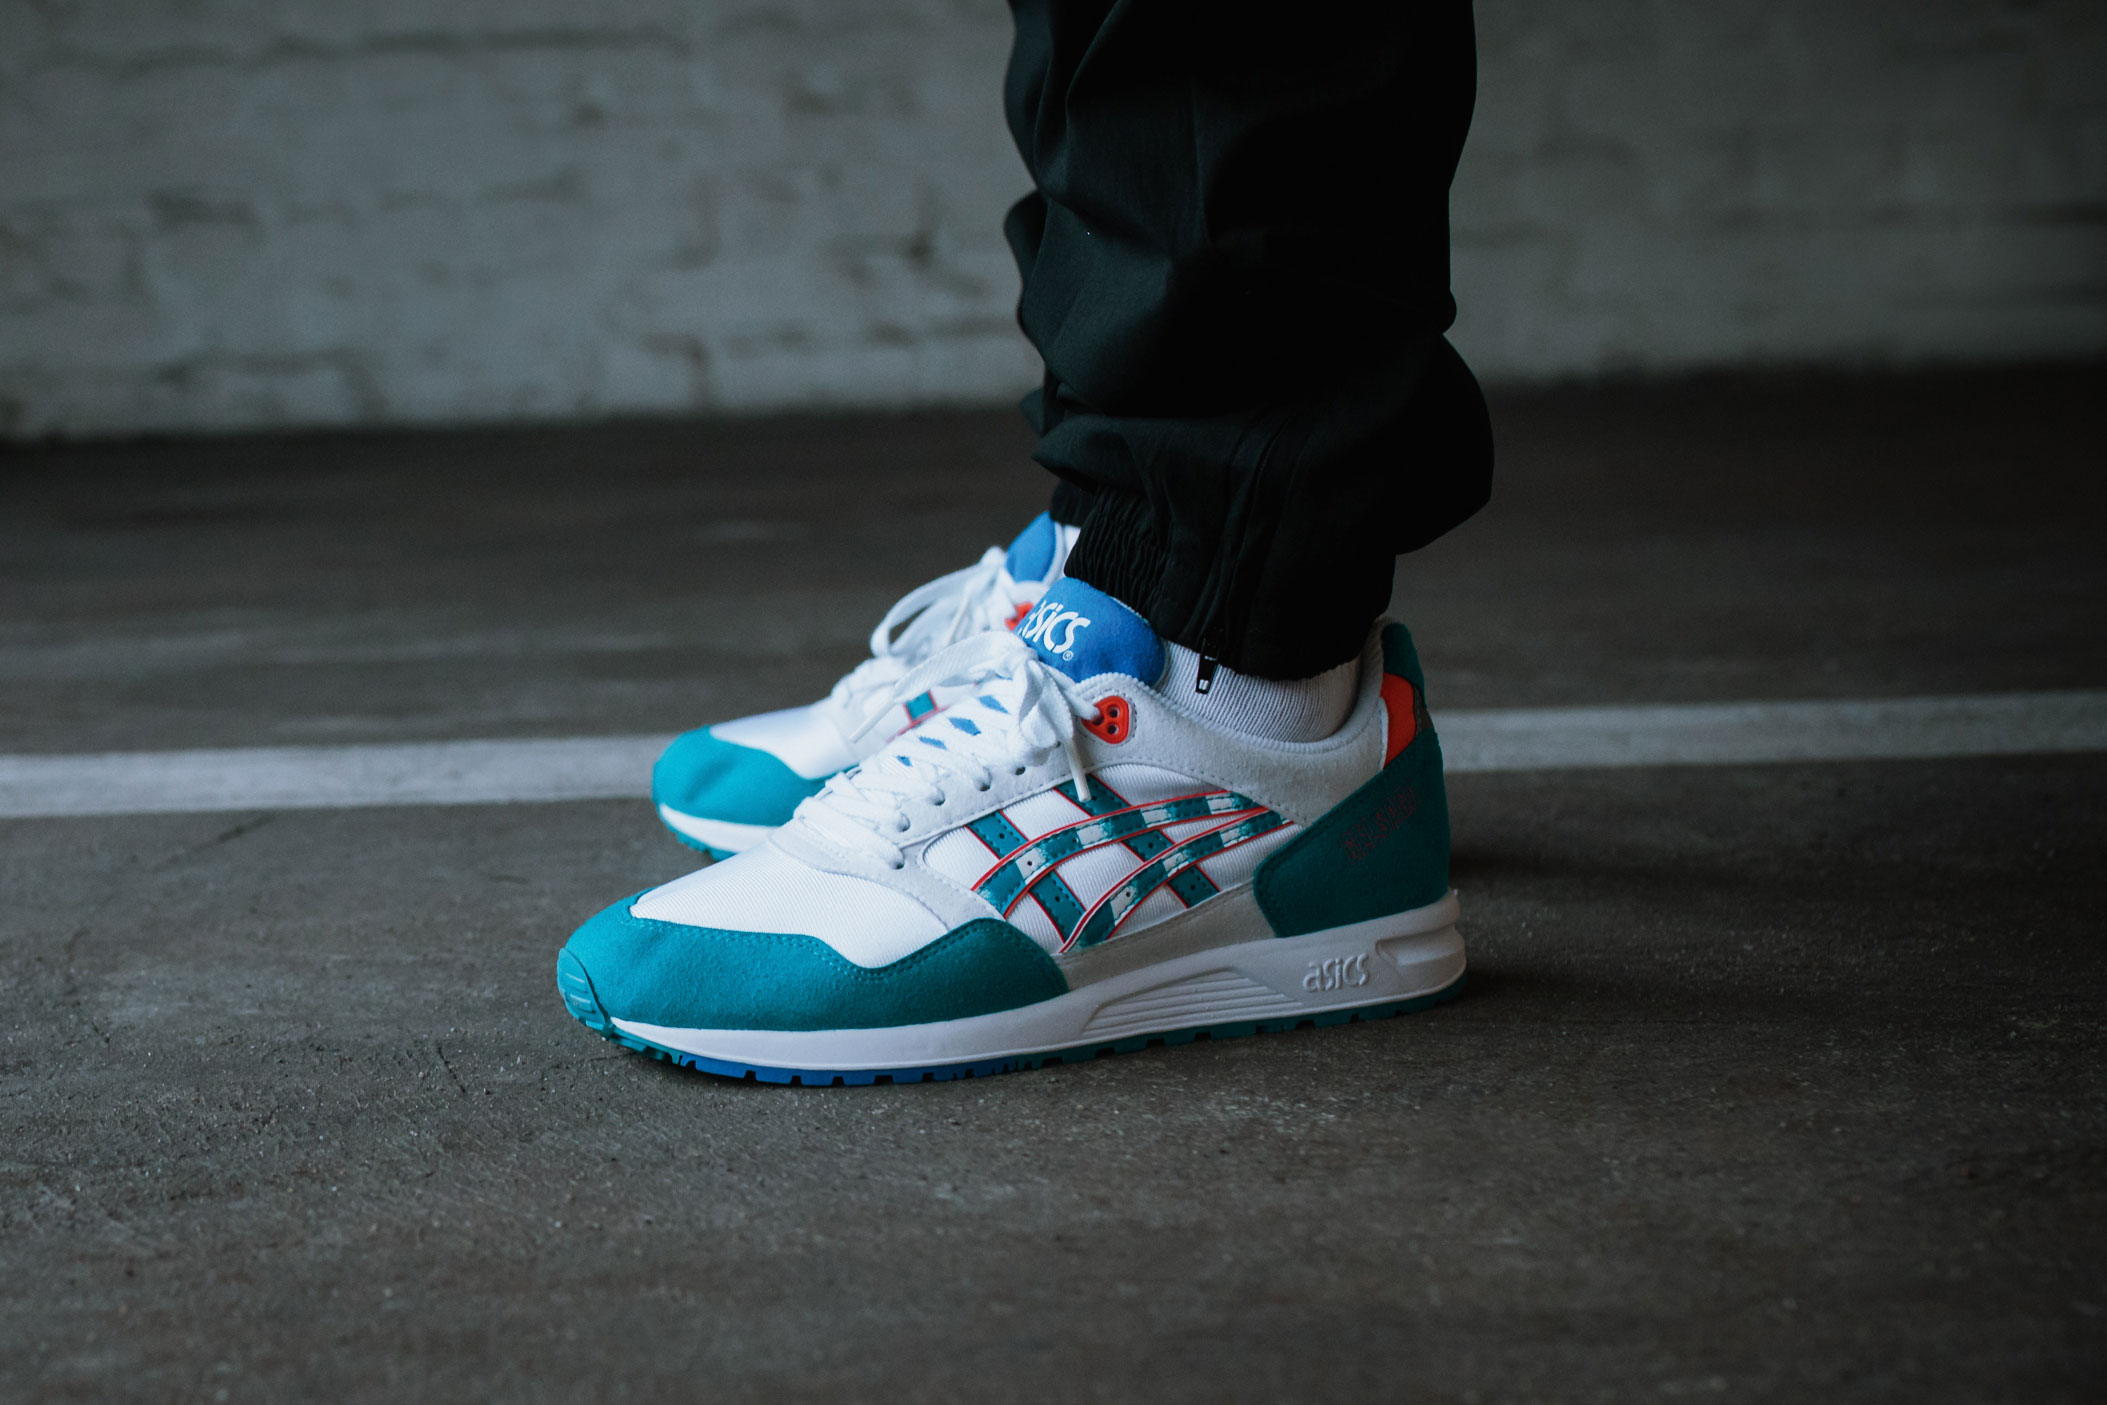 ASICSTIGER GELSAGA Zebra Pack - White Teal Blue (Mood 1)